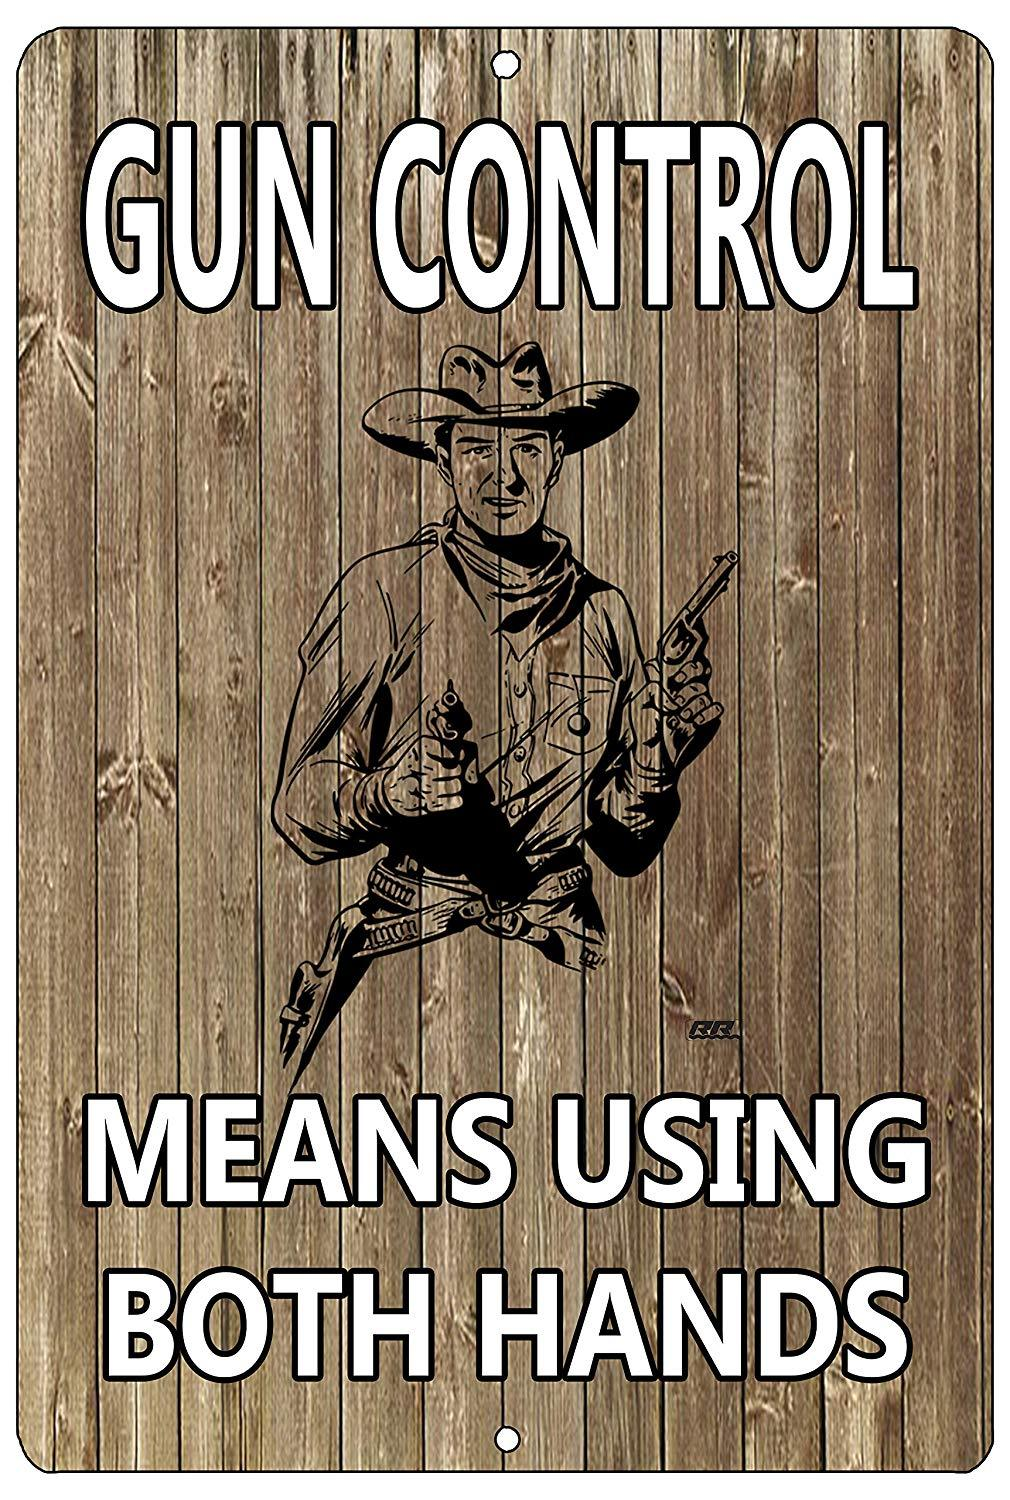 Funny Pro Gun Metal Tin Sign Wall Decor Man Cave Bar Gun Control Means Using Both Hands - Funny Signs - Rogue River Tactical  - Rogue River Tactical